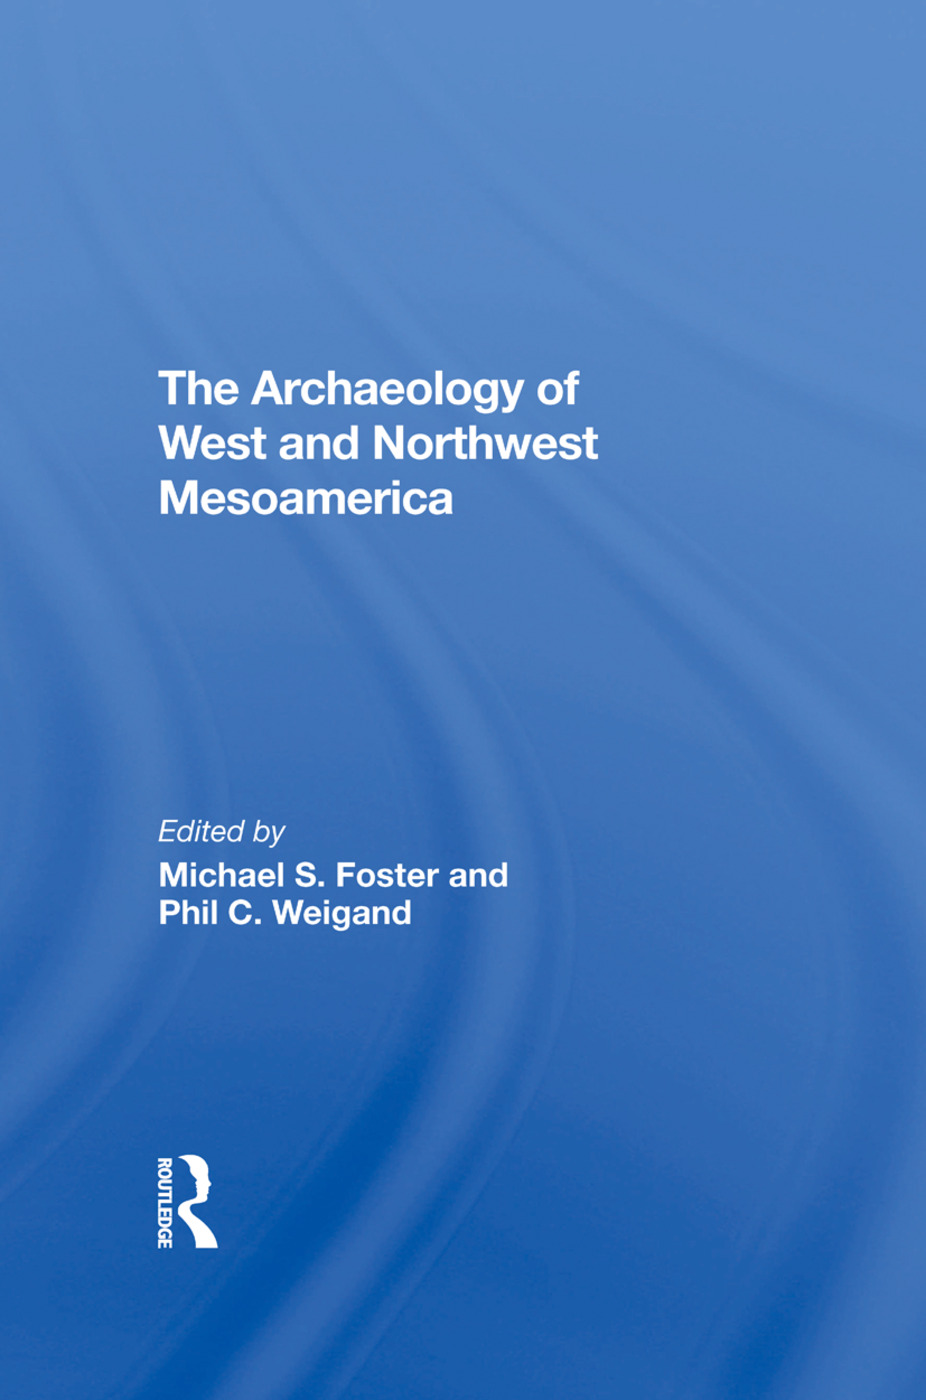 Evidence for Complex Societies During the Western Mesoamerican Classic Period